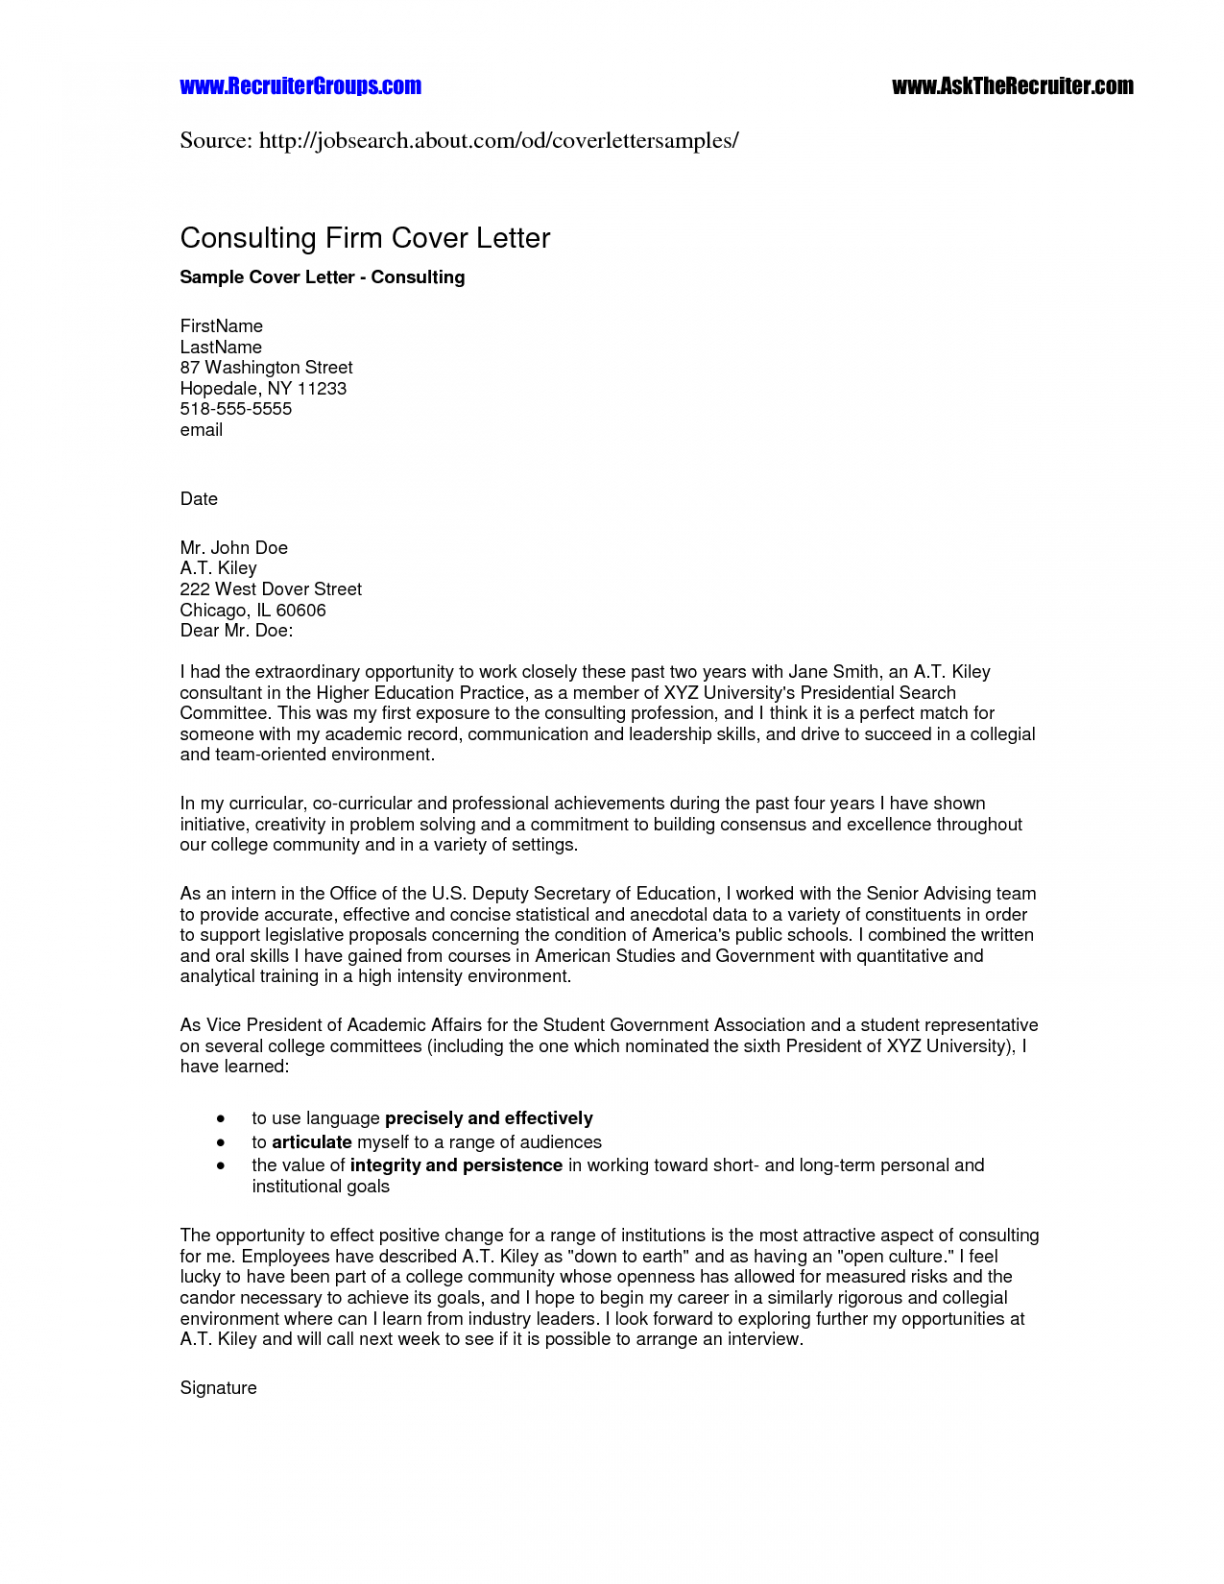 Fancy Letter Template - Brilliant Ideas Cover Letter for Consultant Enom Warb Fancy with